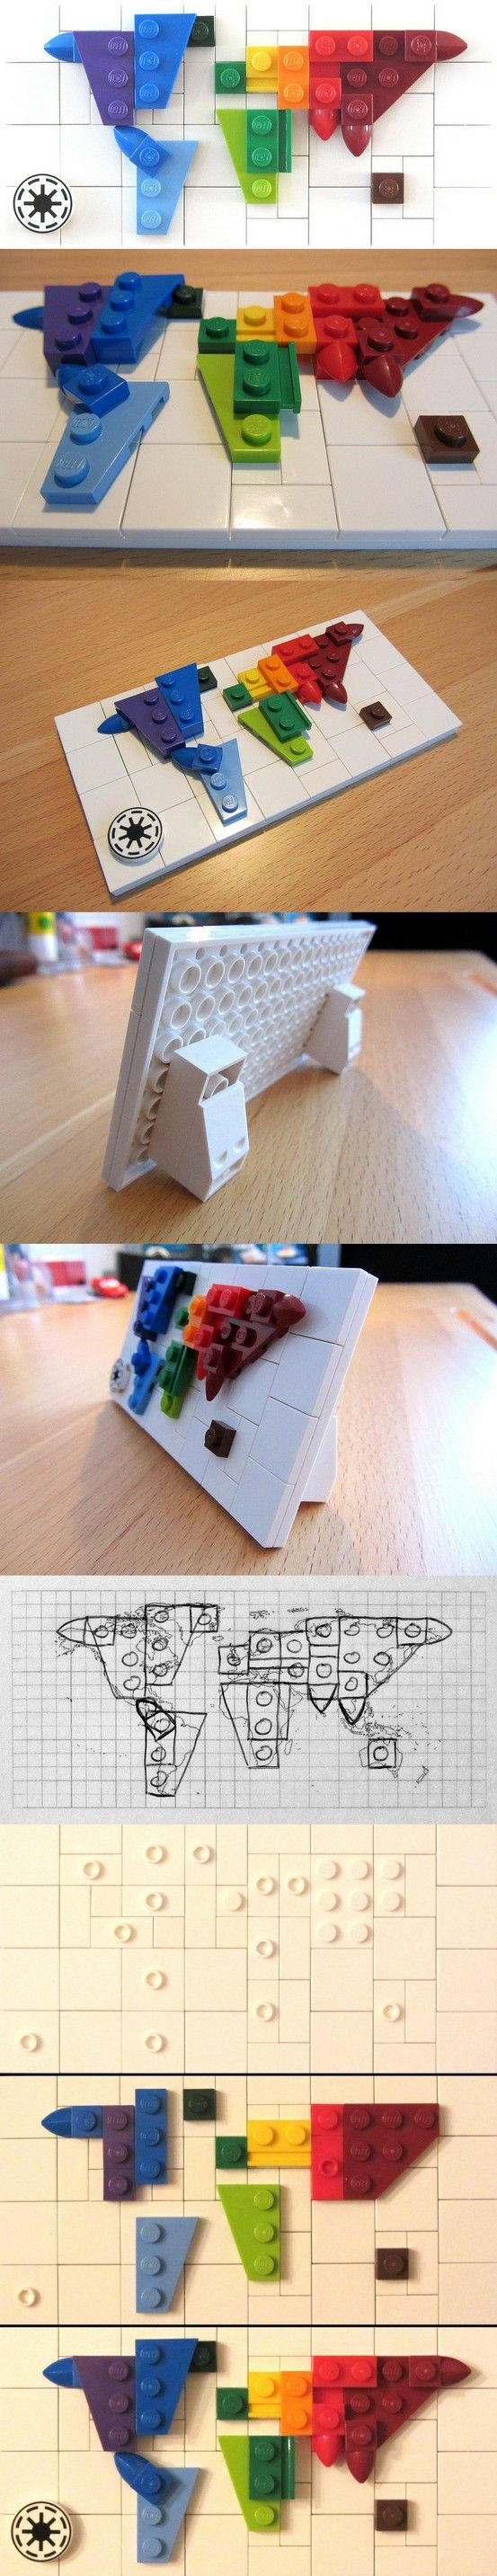 1000 Images About Lego On Pinterest Lego Projects Lego Sets